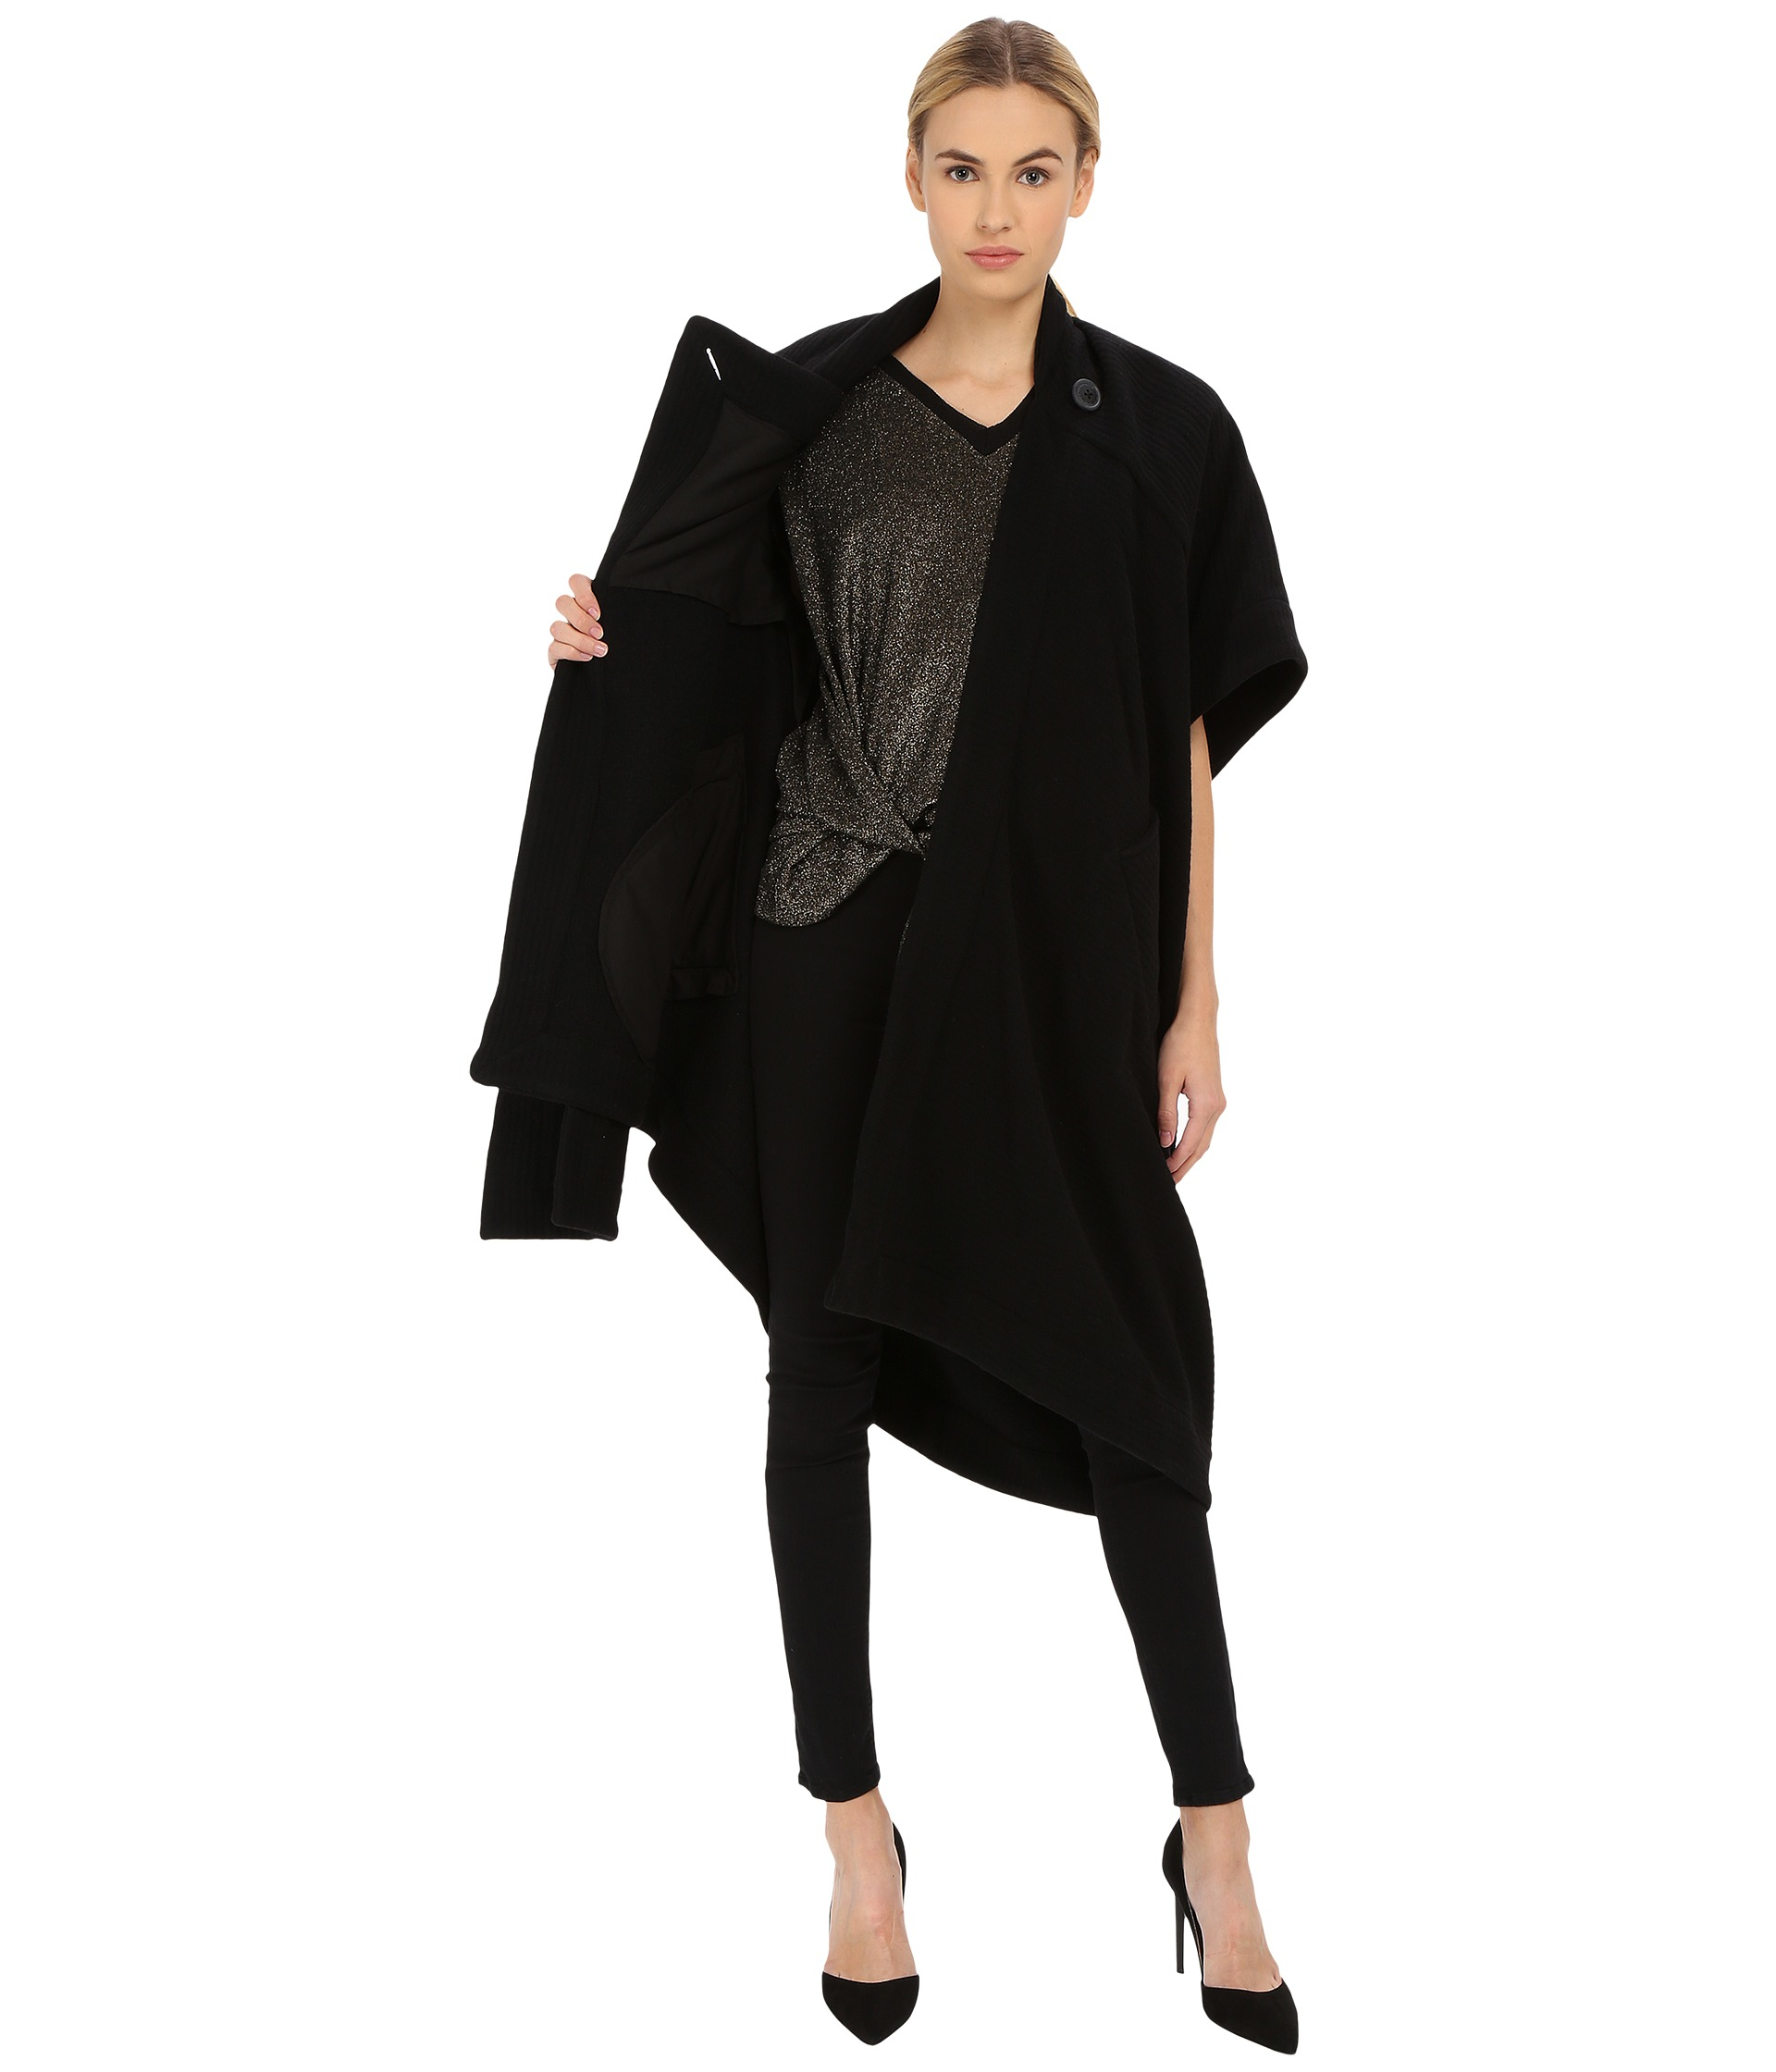 Vivienne westwood Short Sleeve Blanket Coat in Black | Lyst